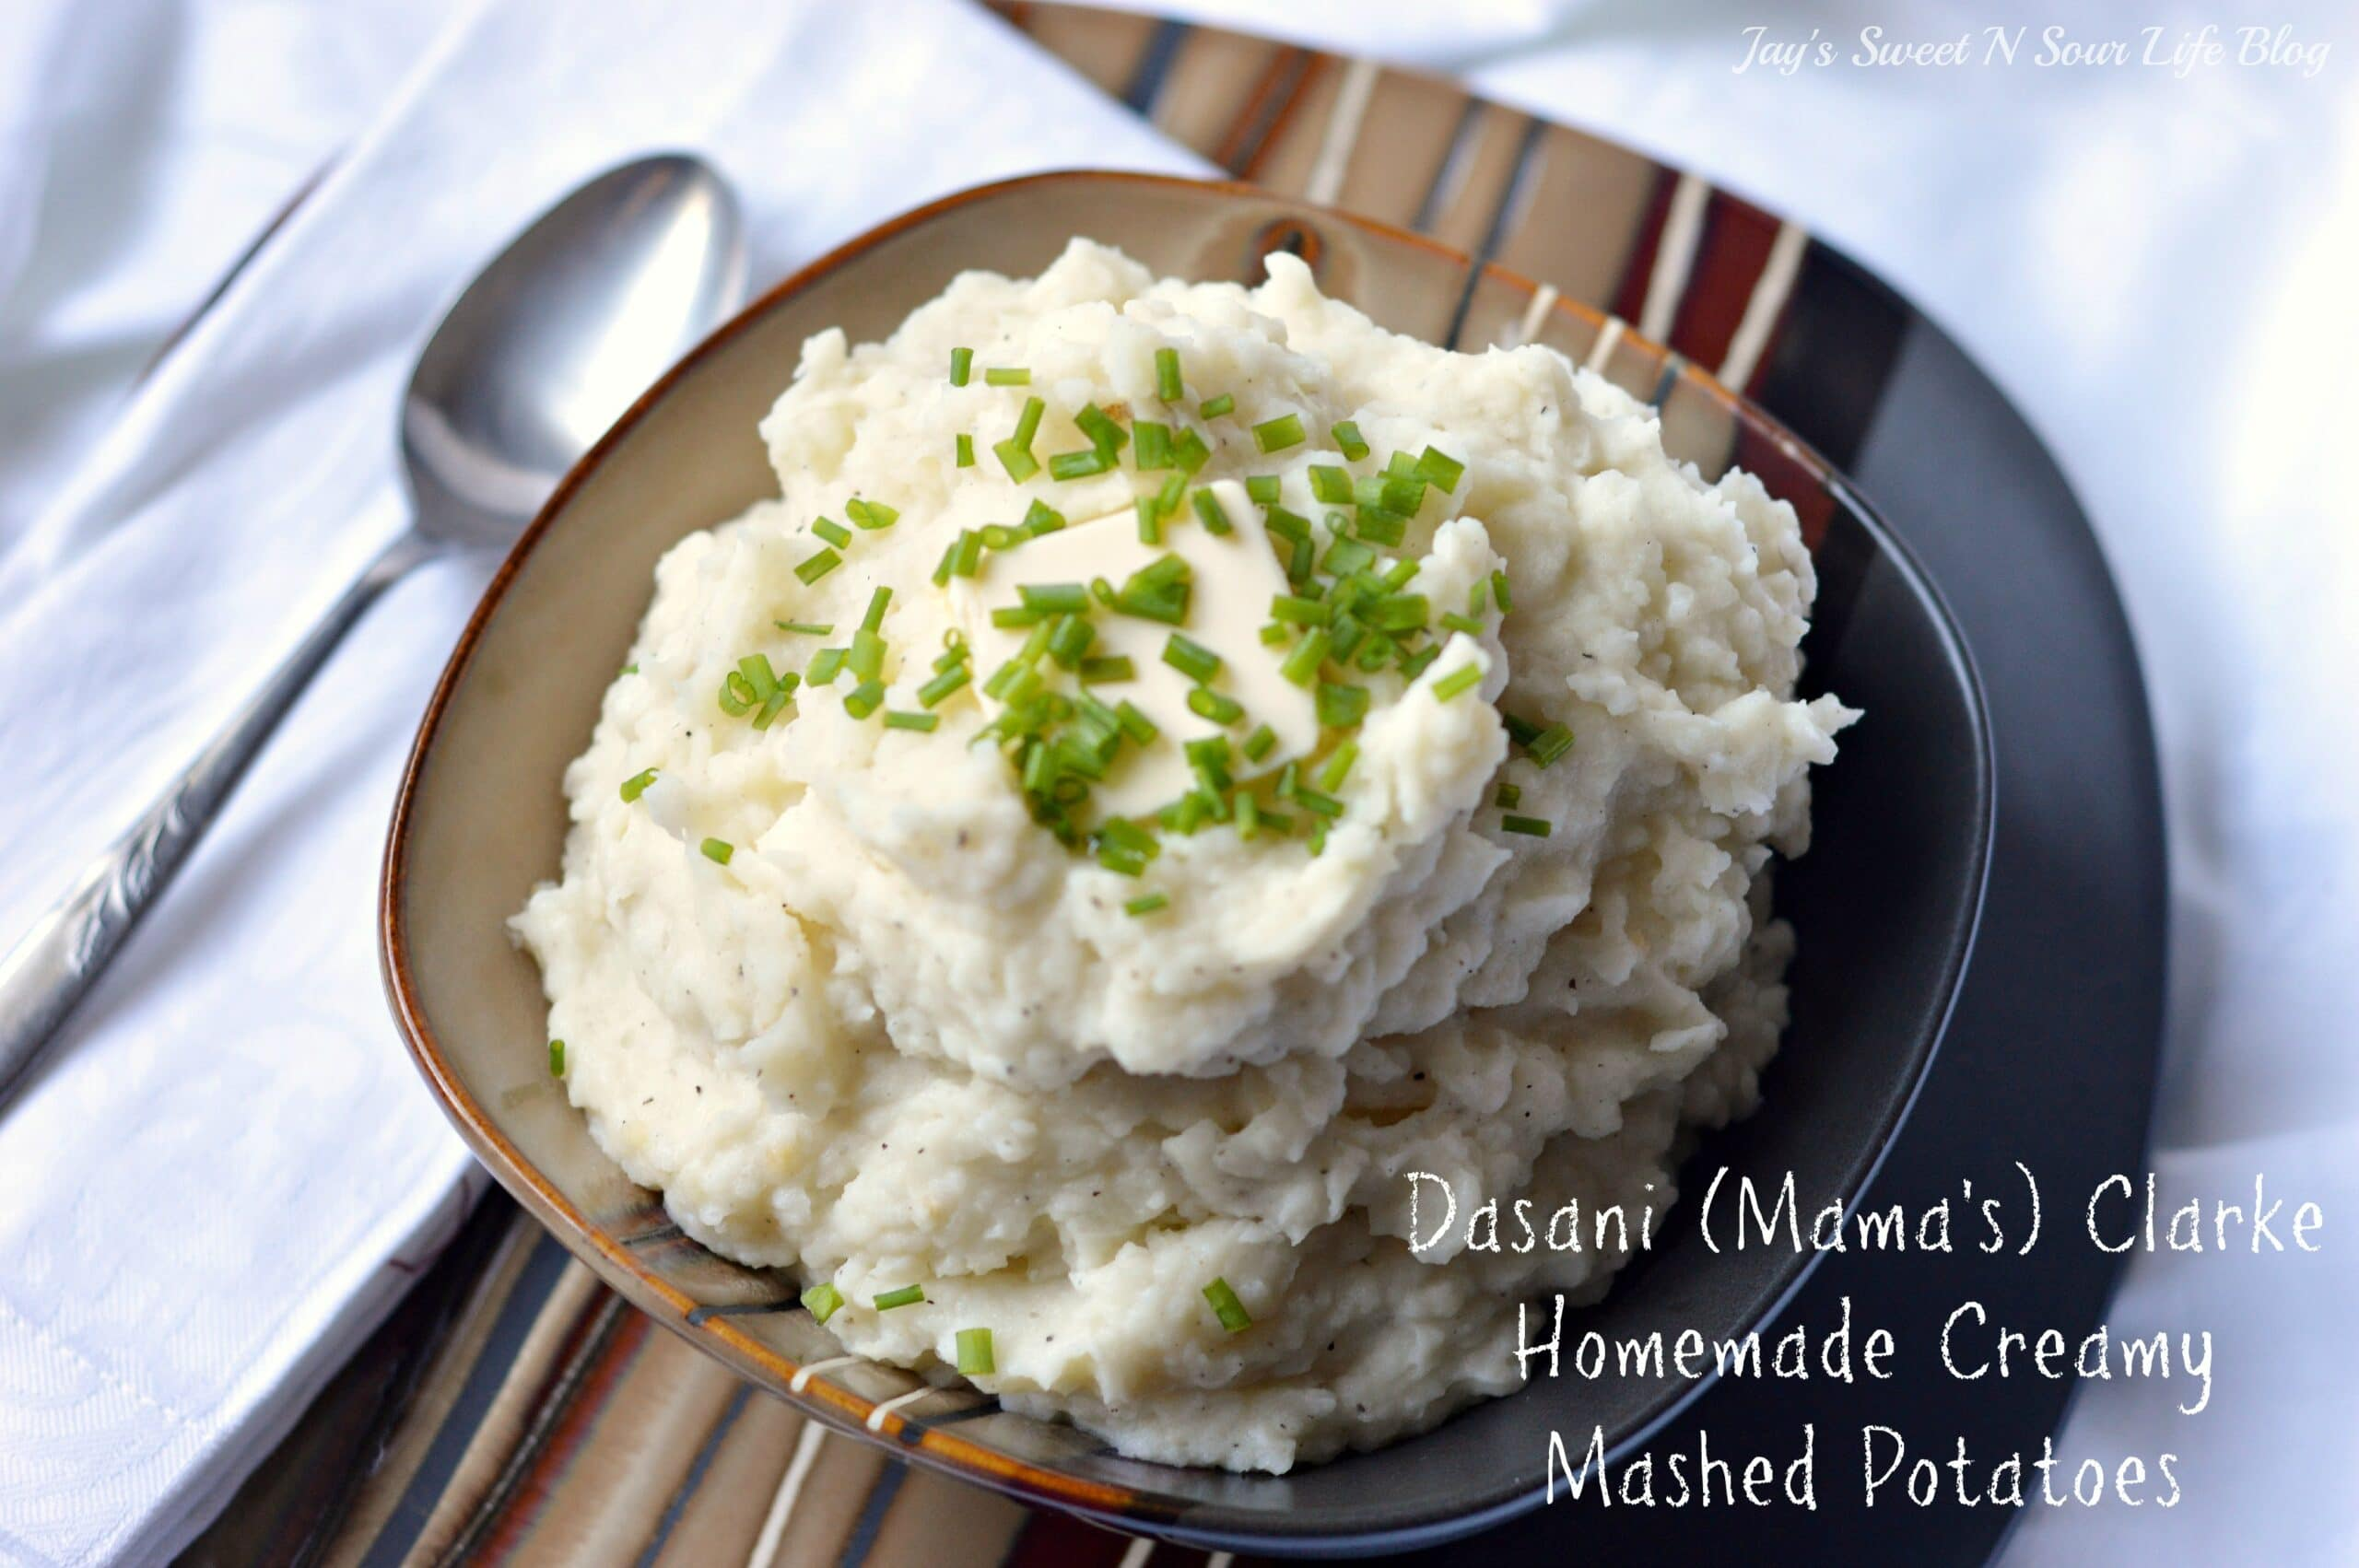 Dasani (Mama's) Clarke Homemade Creamy Mashed Potatoes